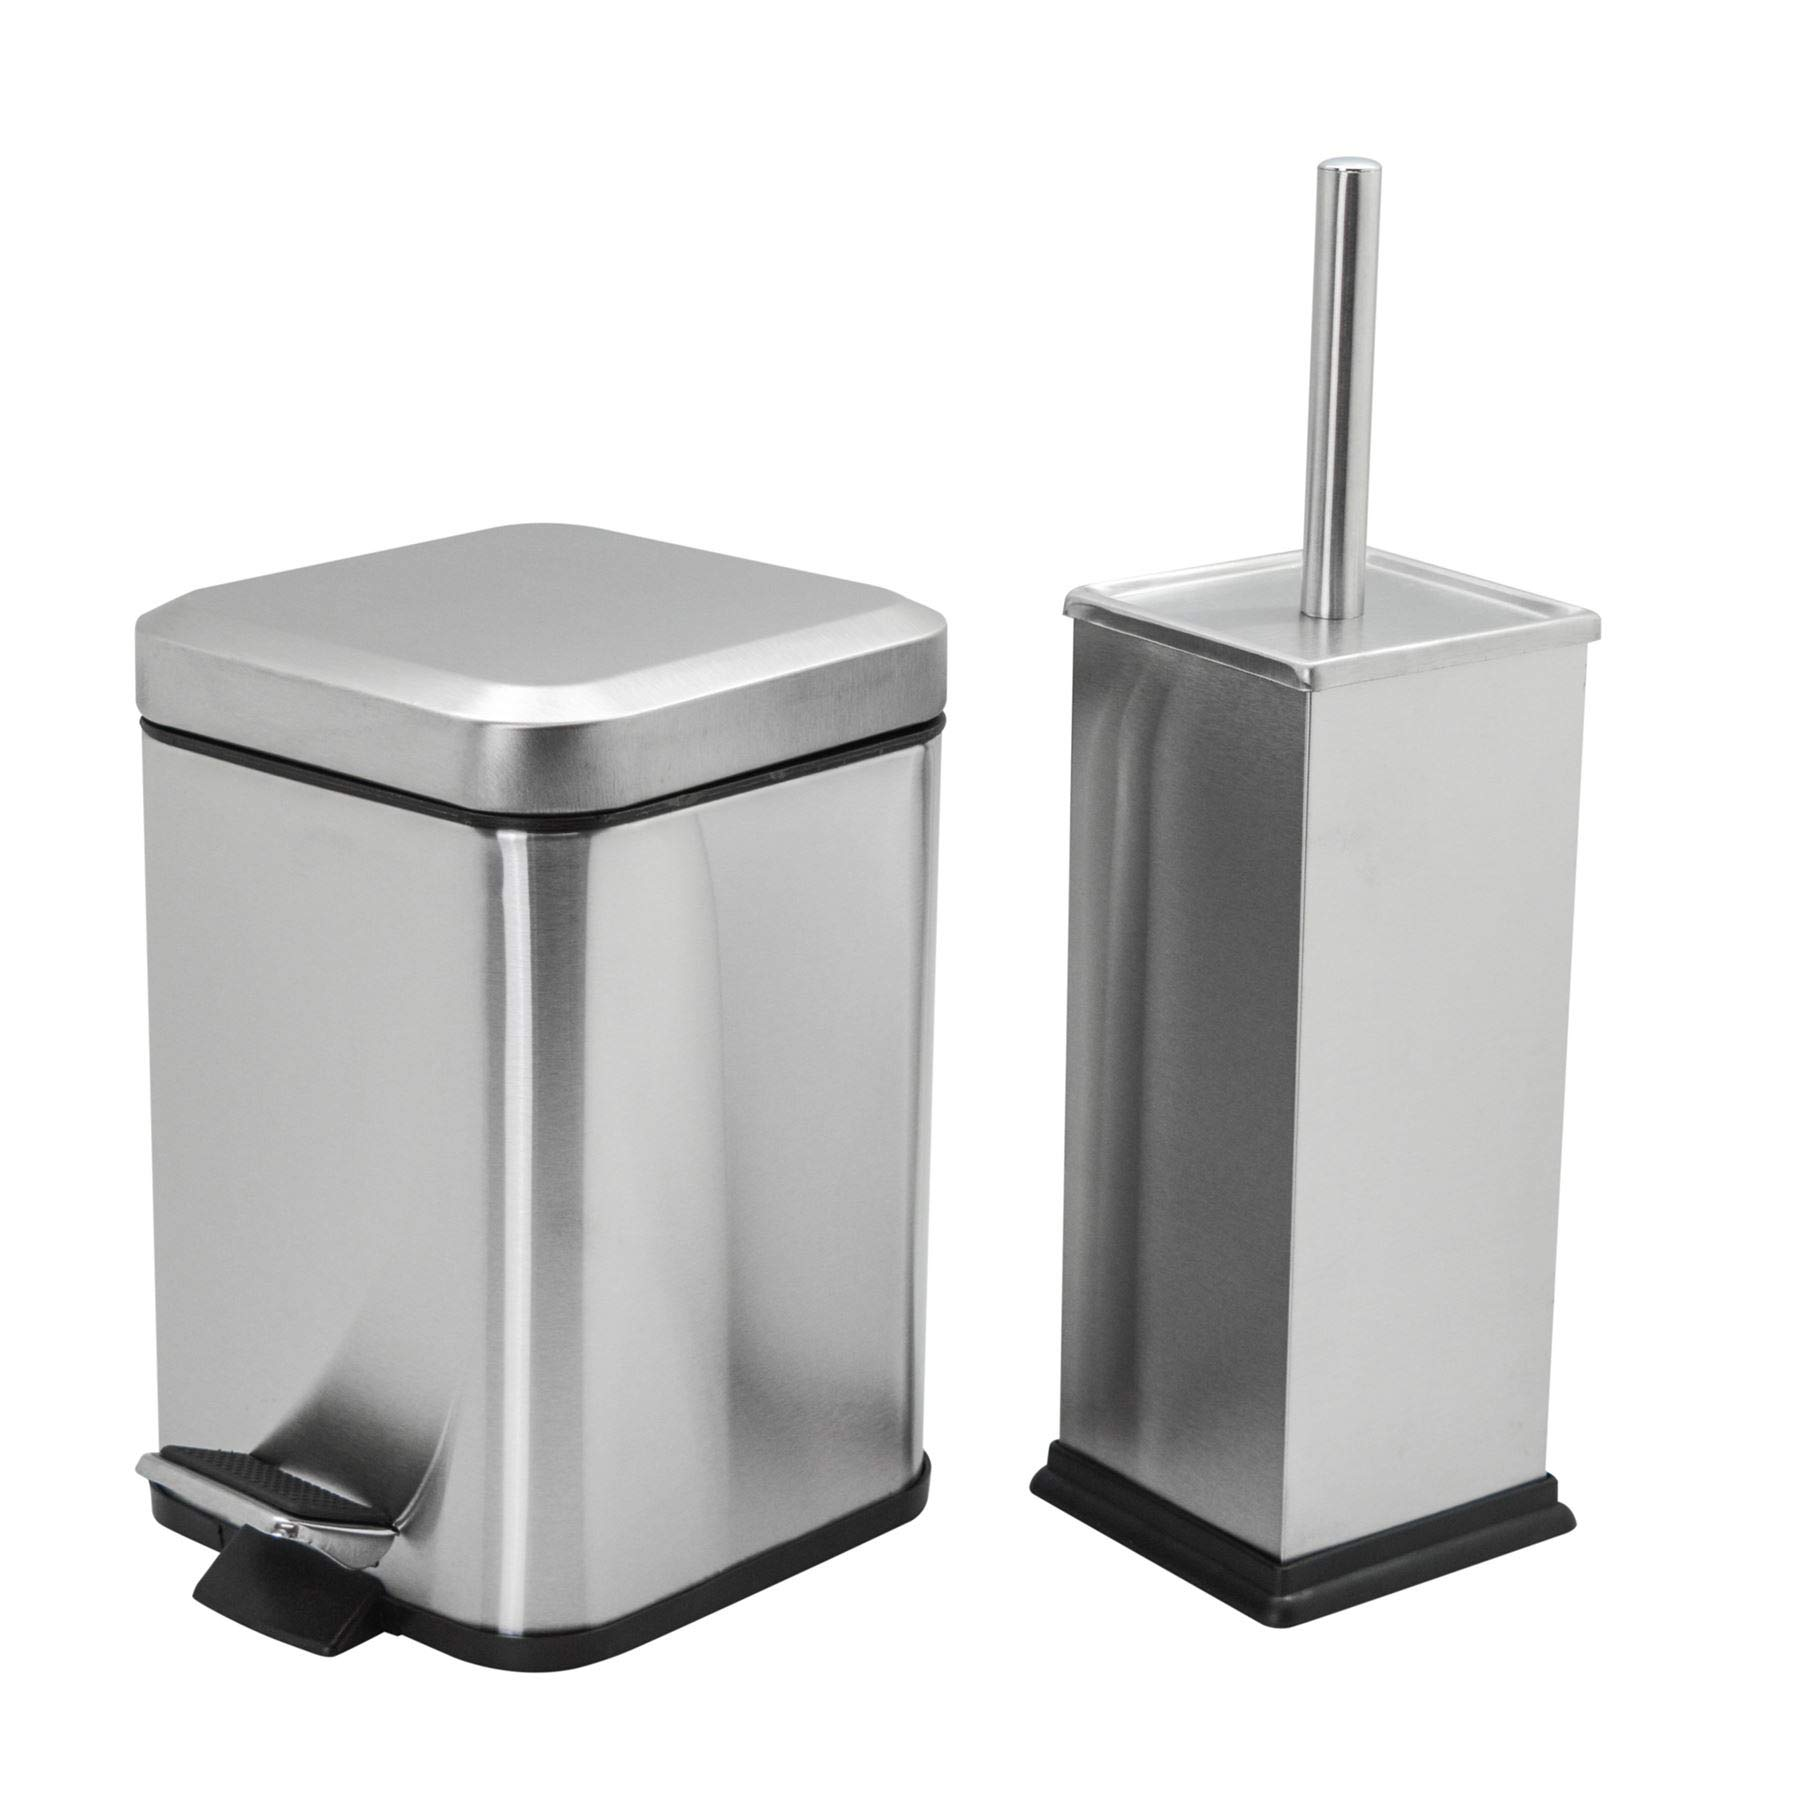 Harbour Housewares Square Steel Bathroom Pedal Bin (3 litres) & Toilet Brush Set - Brushed Metal